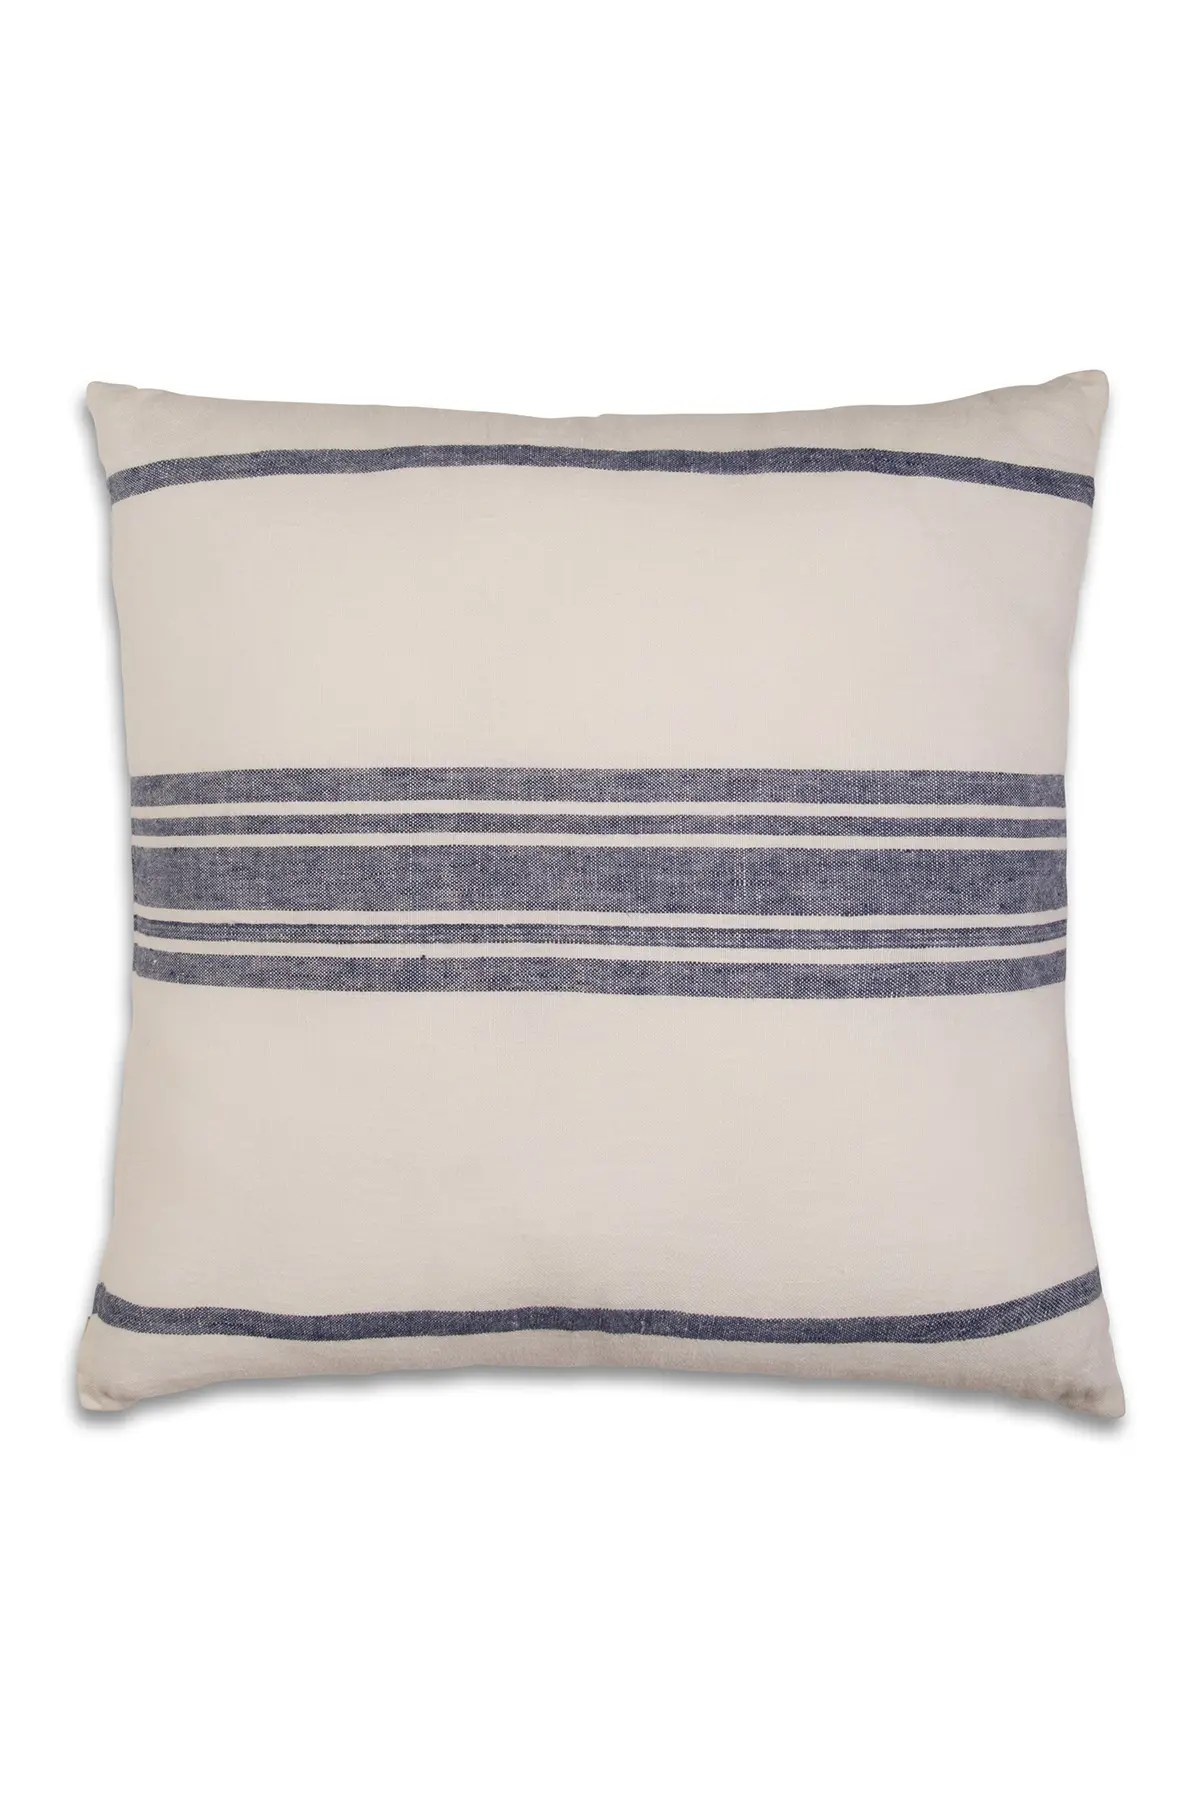 home essentials and beyond navy white linen stripe pillow 18 x 18 nordstrom rack